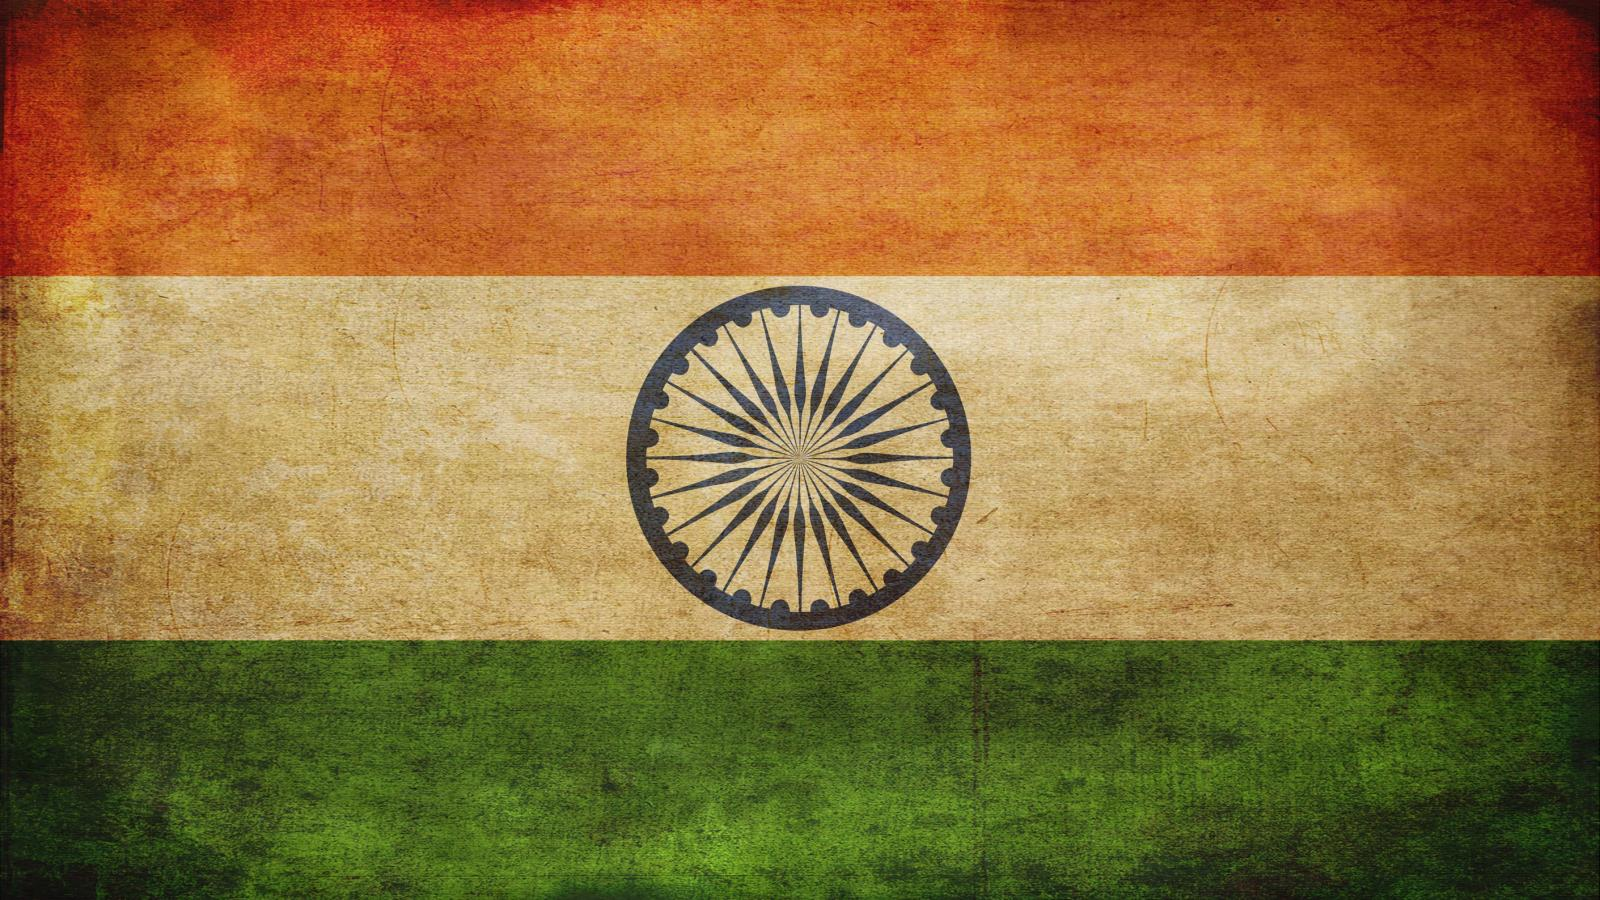 Indian Flag Hd Wallpaper: High Resolution And Artistic Indian Flags Or Tiranga For